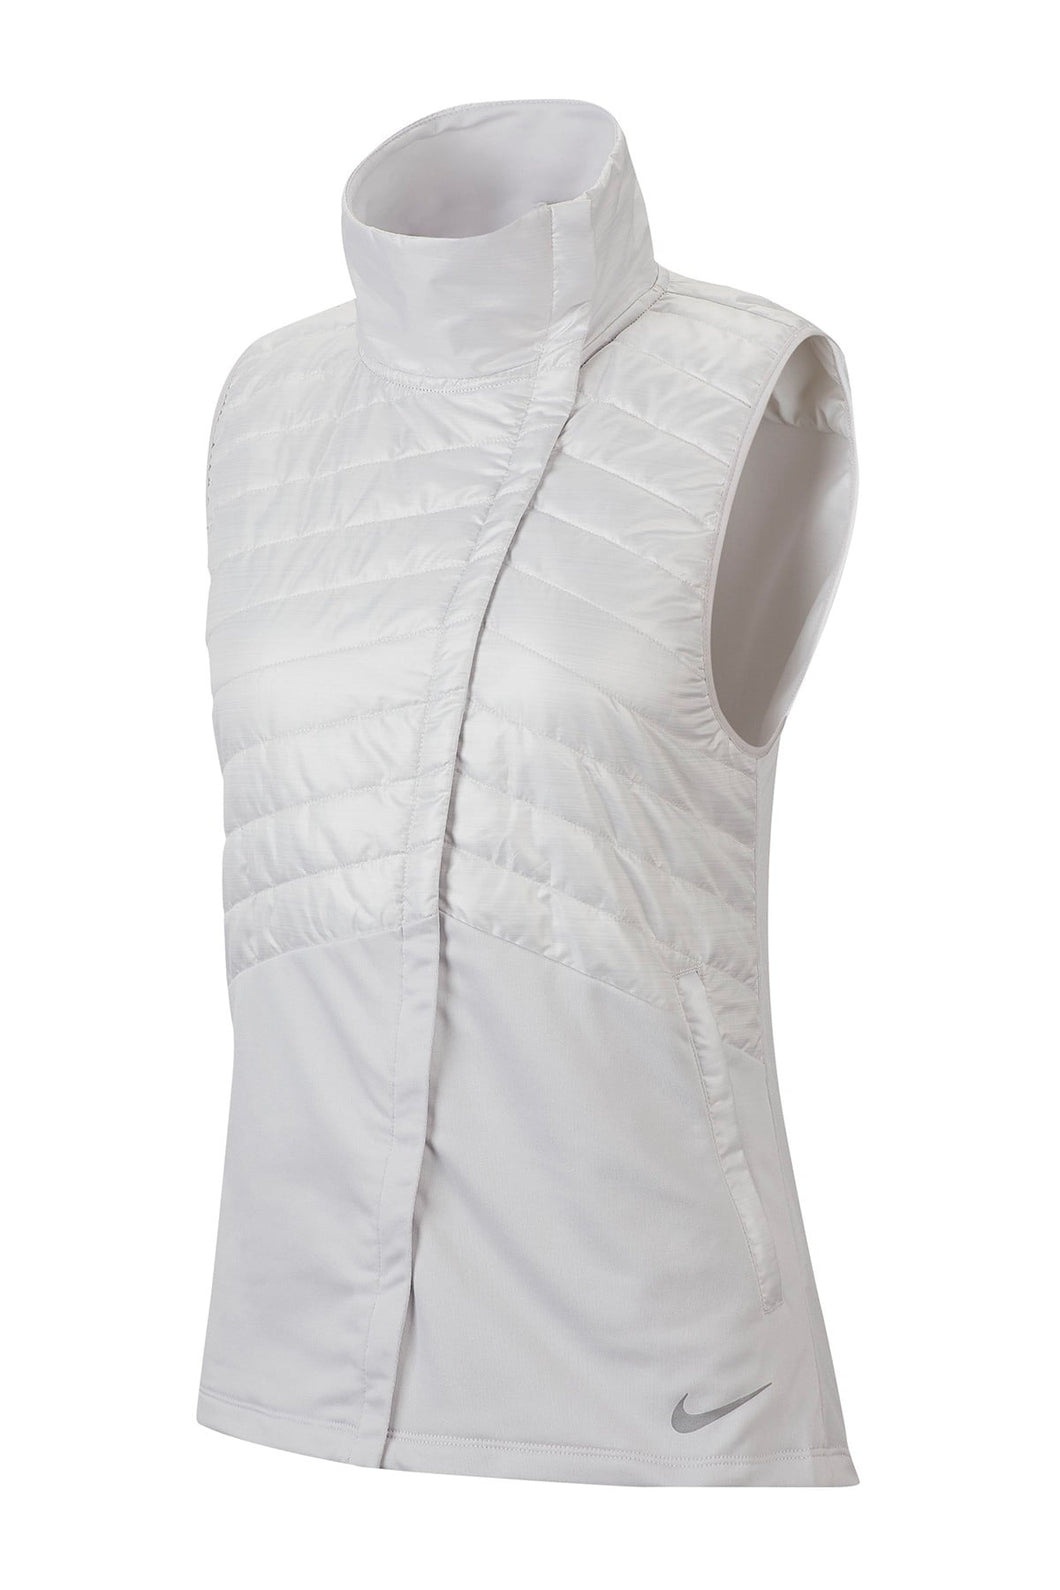 NIKE - Women's Essential Nike Running Vest, White (XS,L,XL)